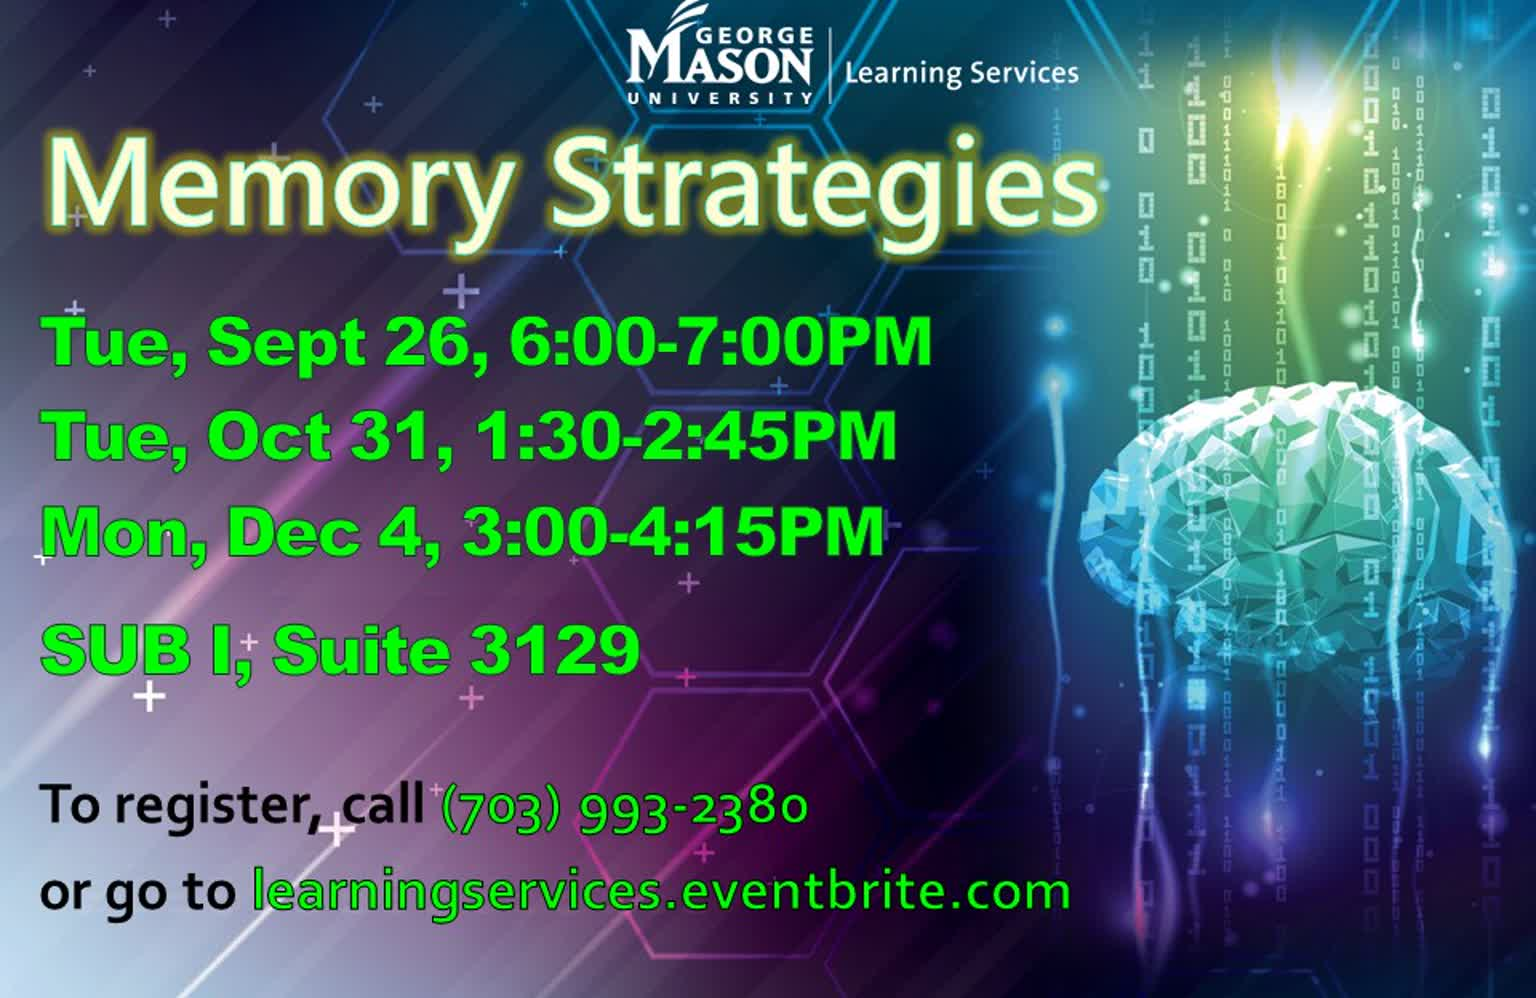 Information regarding Memory Stratigies Workshop is as follows Start date (when you would like your content to be posted) is August 28 2017 and End Date  (when you would like your content to be removed from the screens) is December 05 2017 and File is Browse and Email is chahn2@gmu.edu and Name is Crystal Hahn and File Name is Memory-Strategies-Fall-2017_comp.jpg and Group Name is Learning Services and Panel for your ad to be displayed is Main and Affiliation is Mason Department and Name of Ad/Event is Memory Stratigies Workshop and